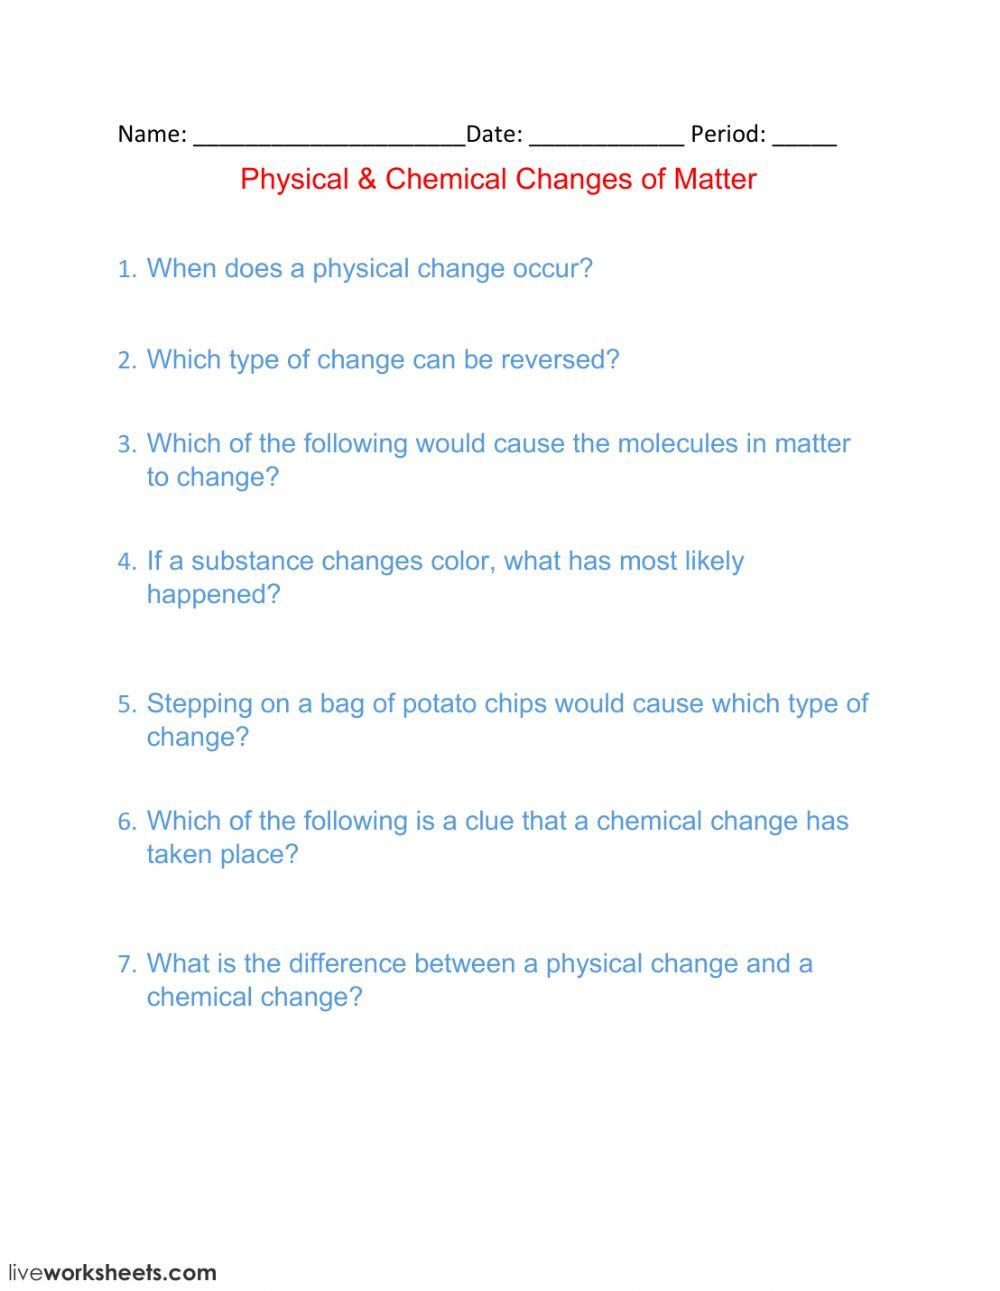 Chemical and Physical Change Worksheet Physical Chemical Changes Of Matter Interactive Worksheet